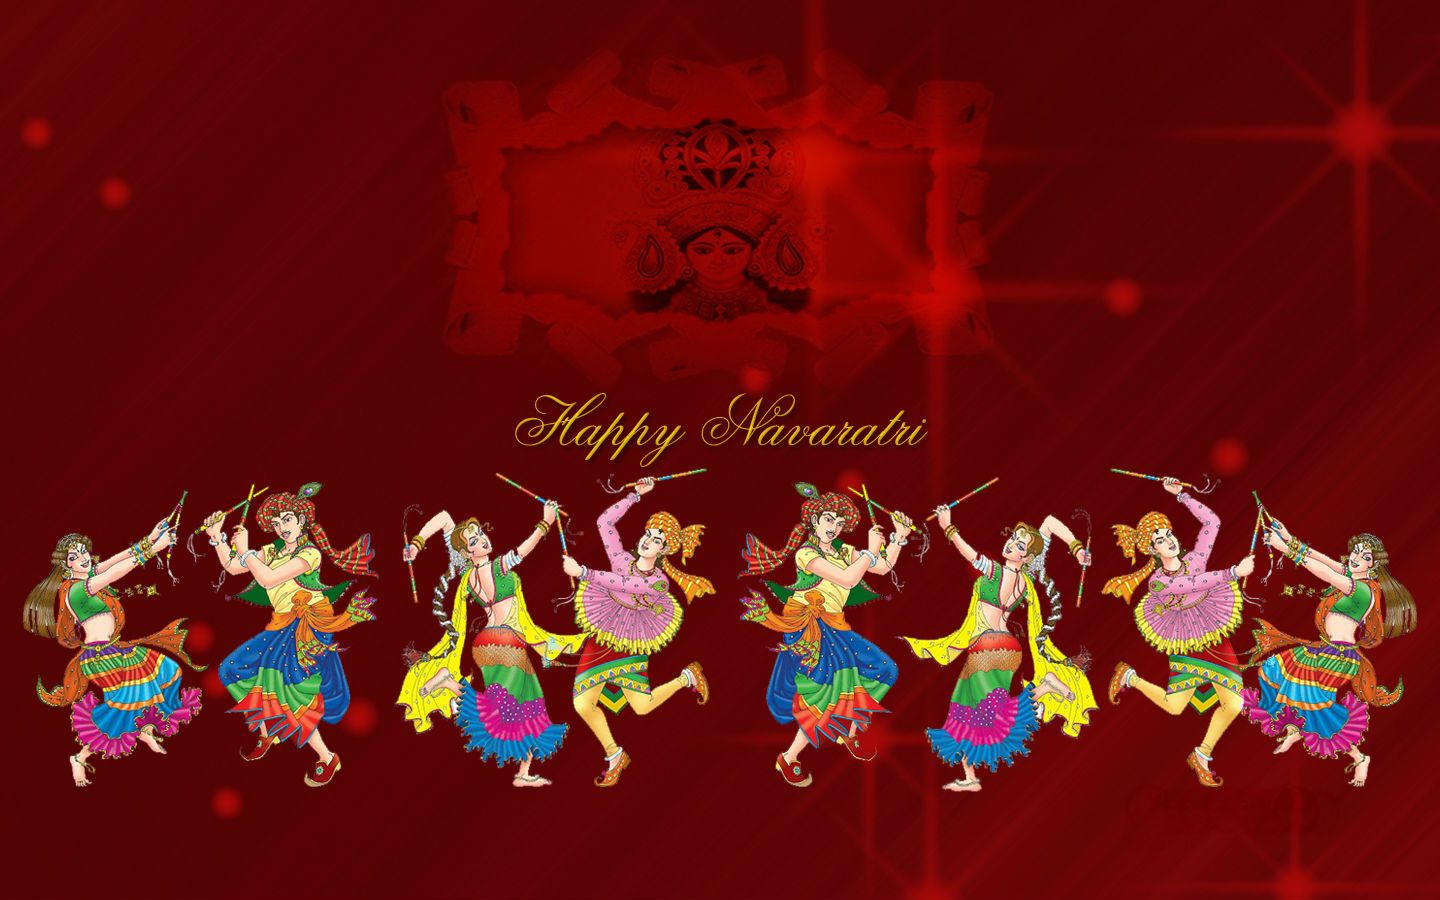 Shubh navratri wallpaper download for desktop desire pinterest the word navratri means nine nights navratri is a major festival celebrated all over india during these nine nights nine forms of devi are worshipped stopboris Image collections